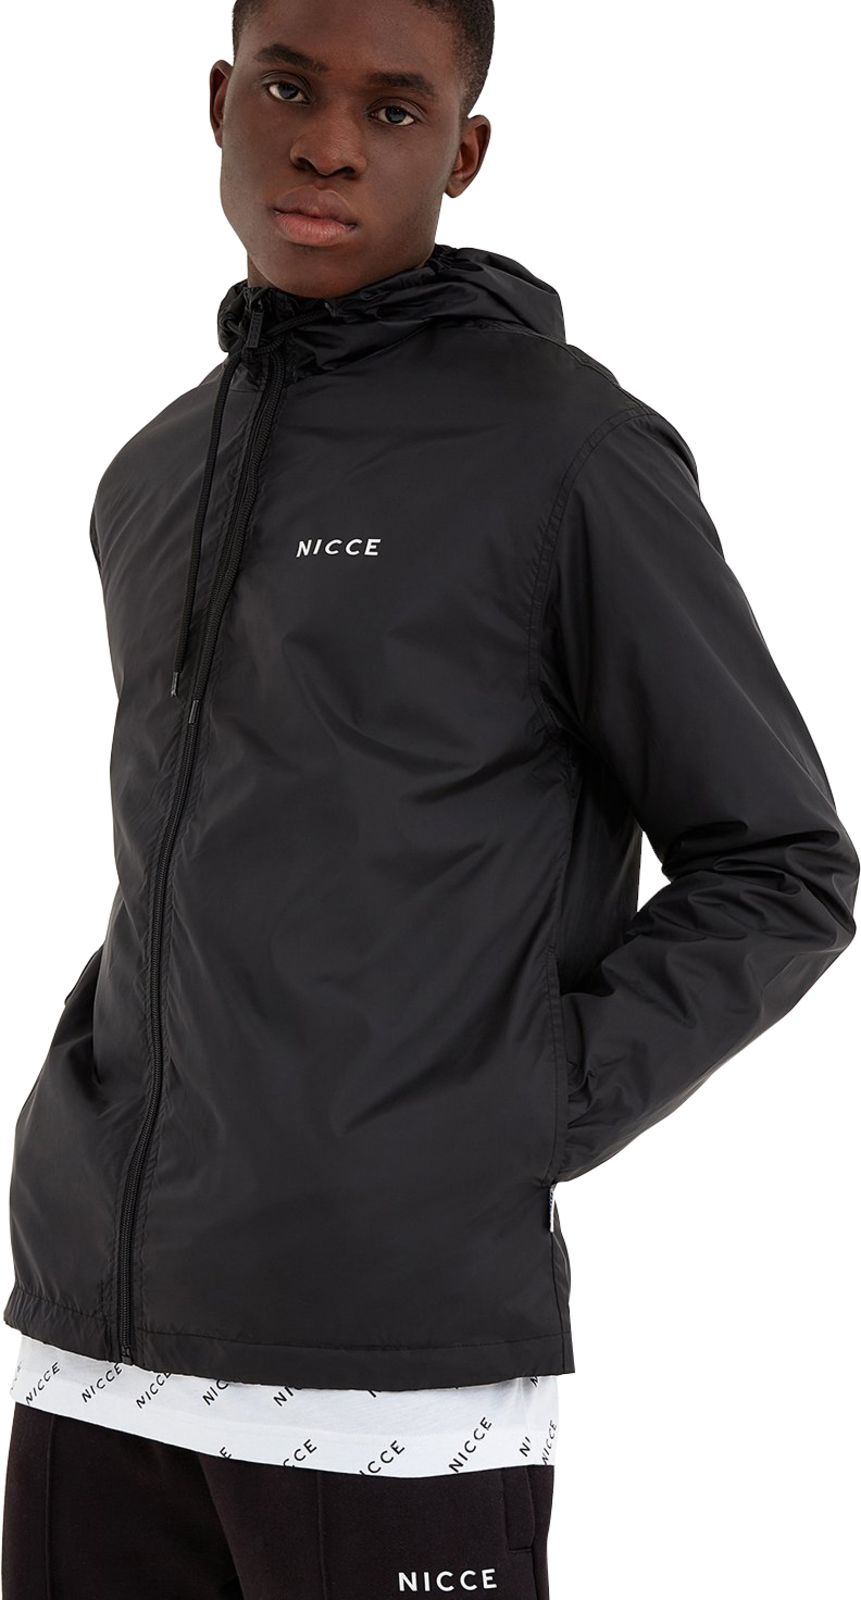 NICCE Core Windbreaker Jacket Black